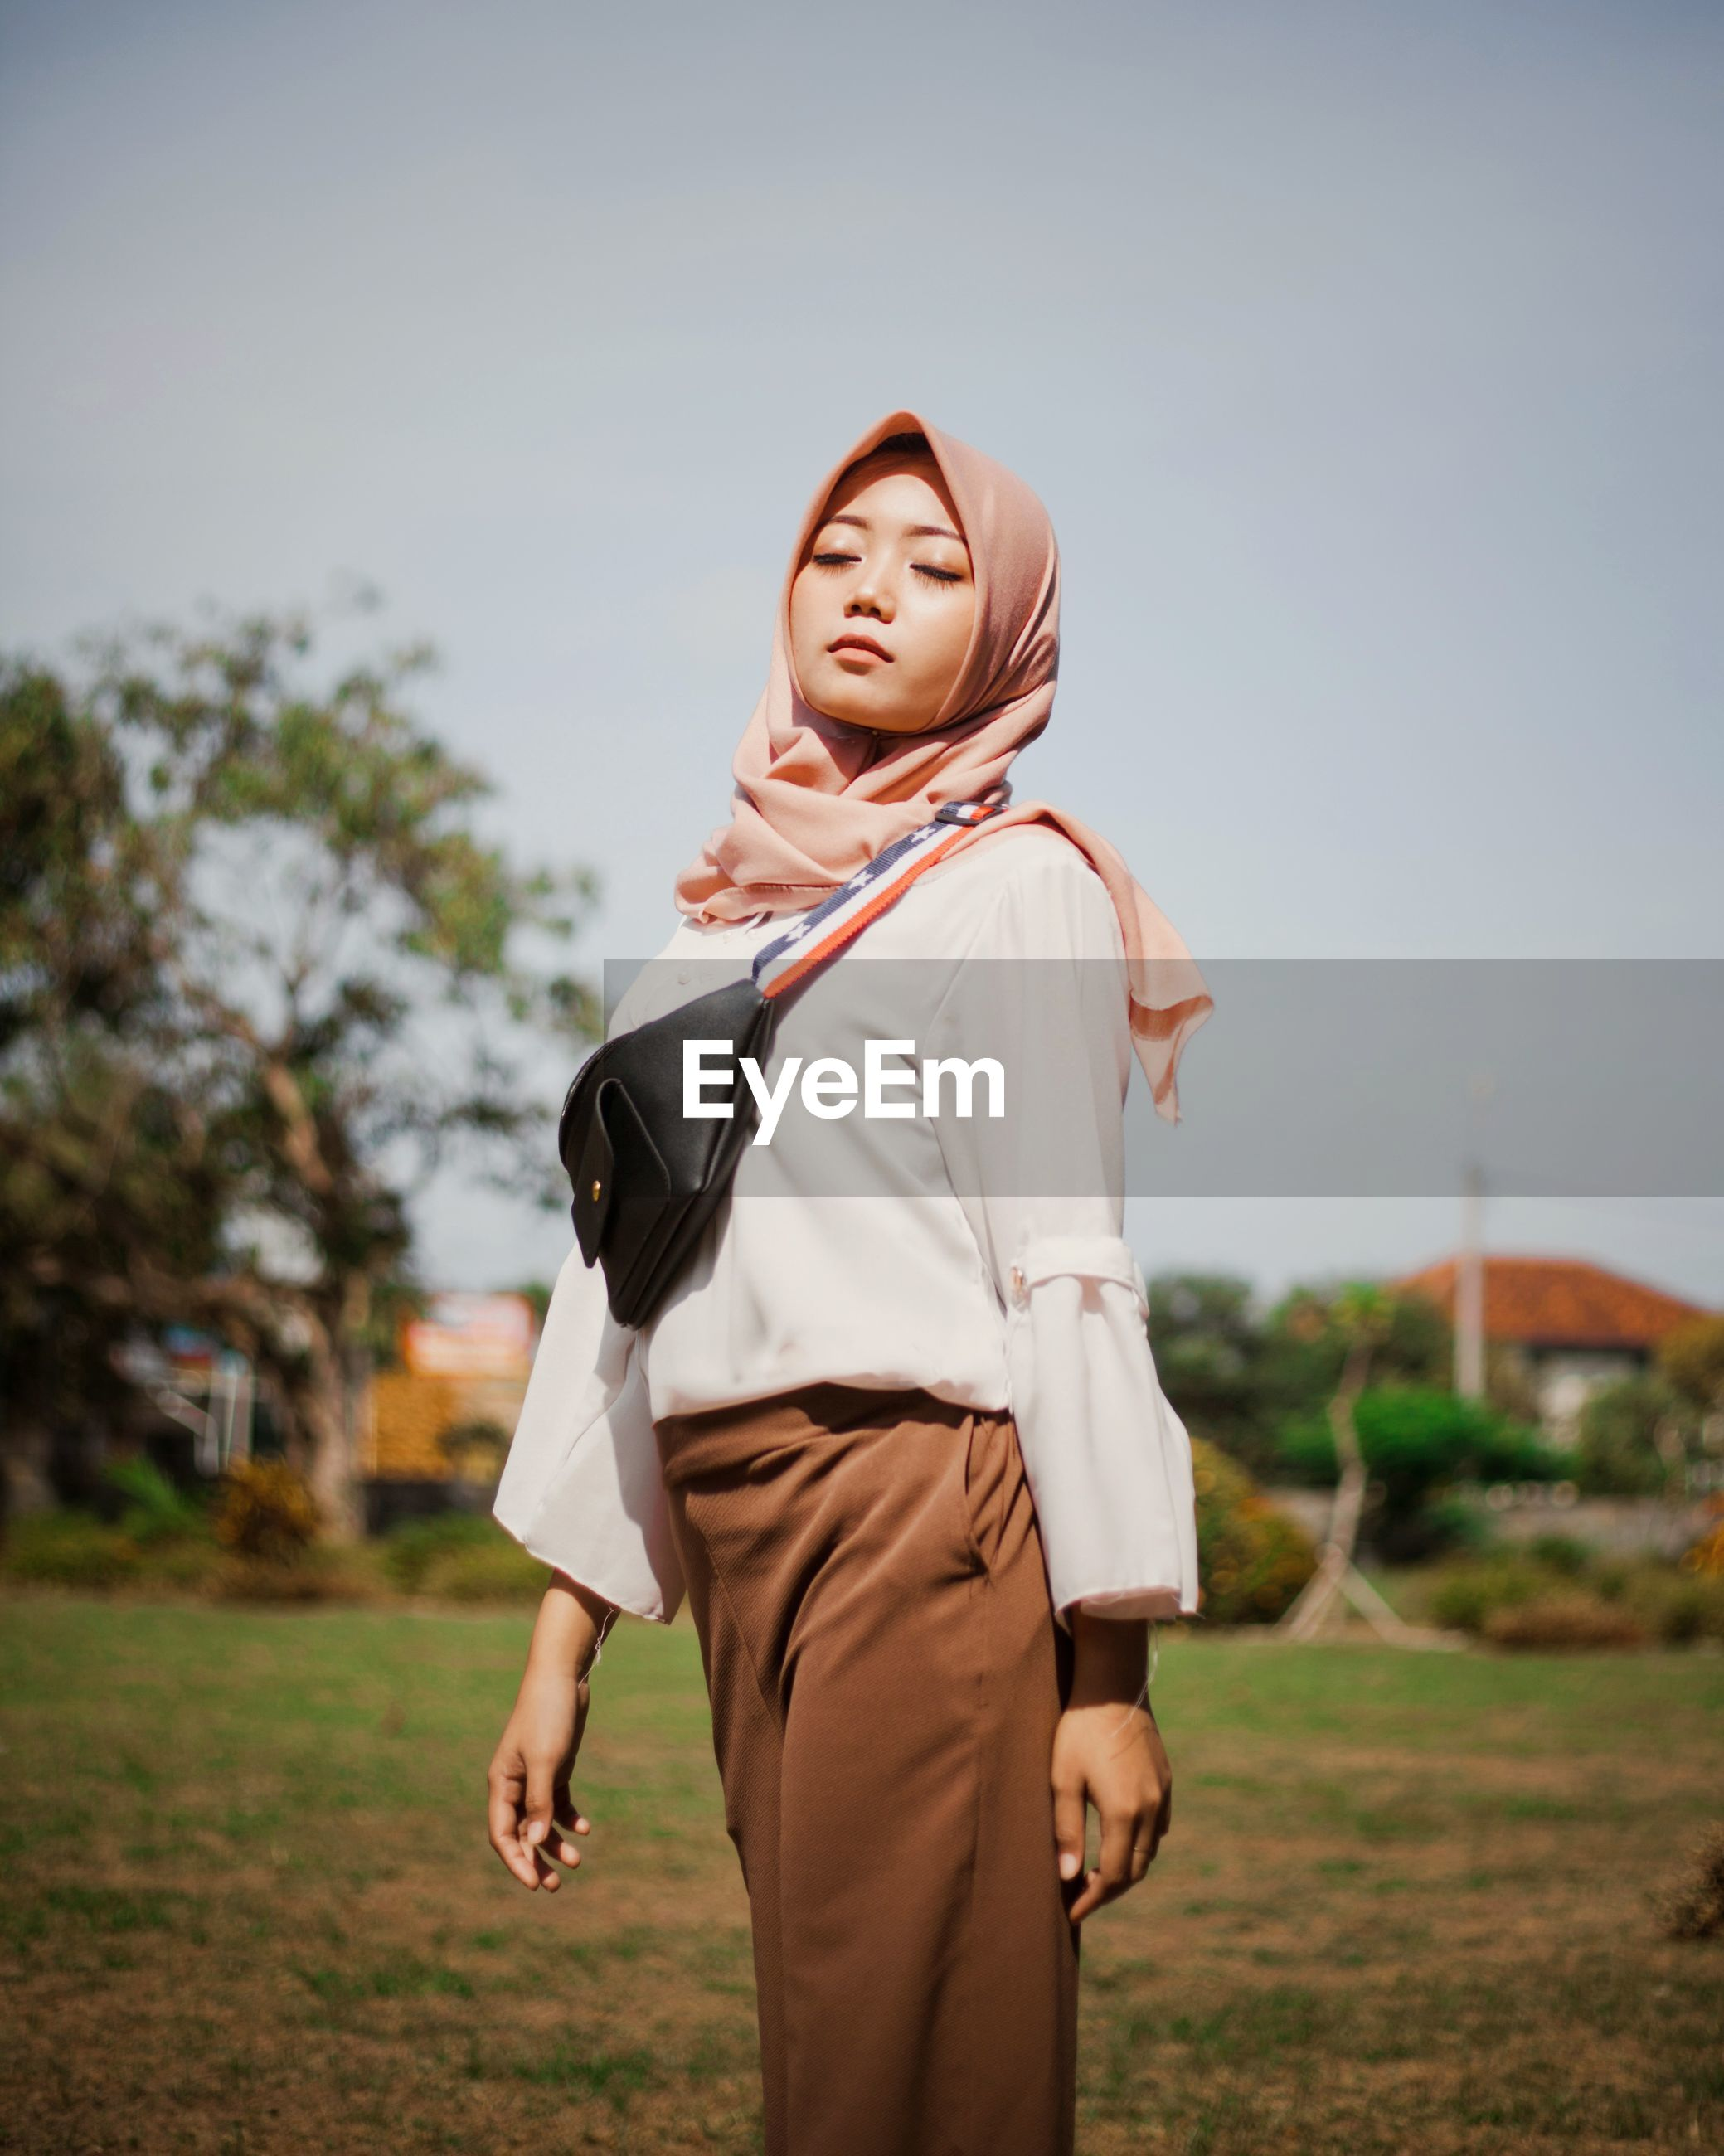 Young woman wearing hijab while standing on field against sky